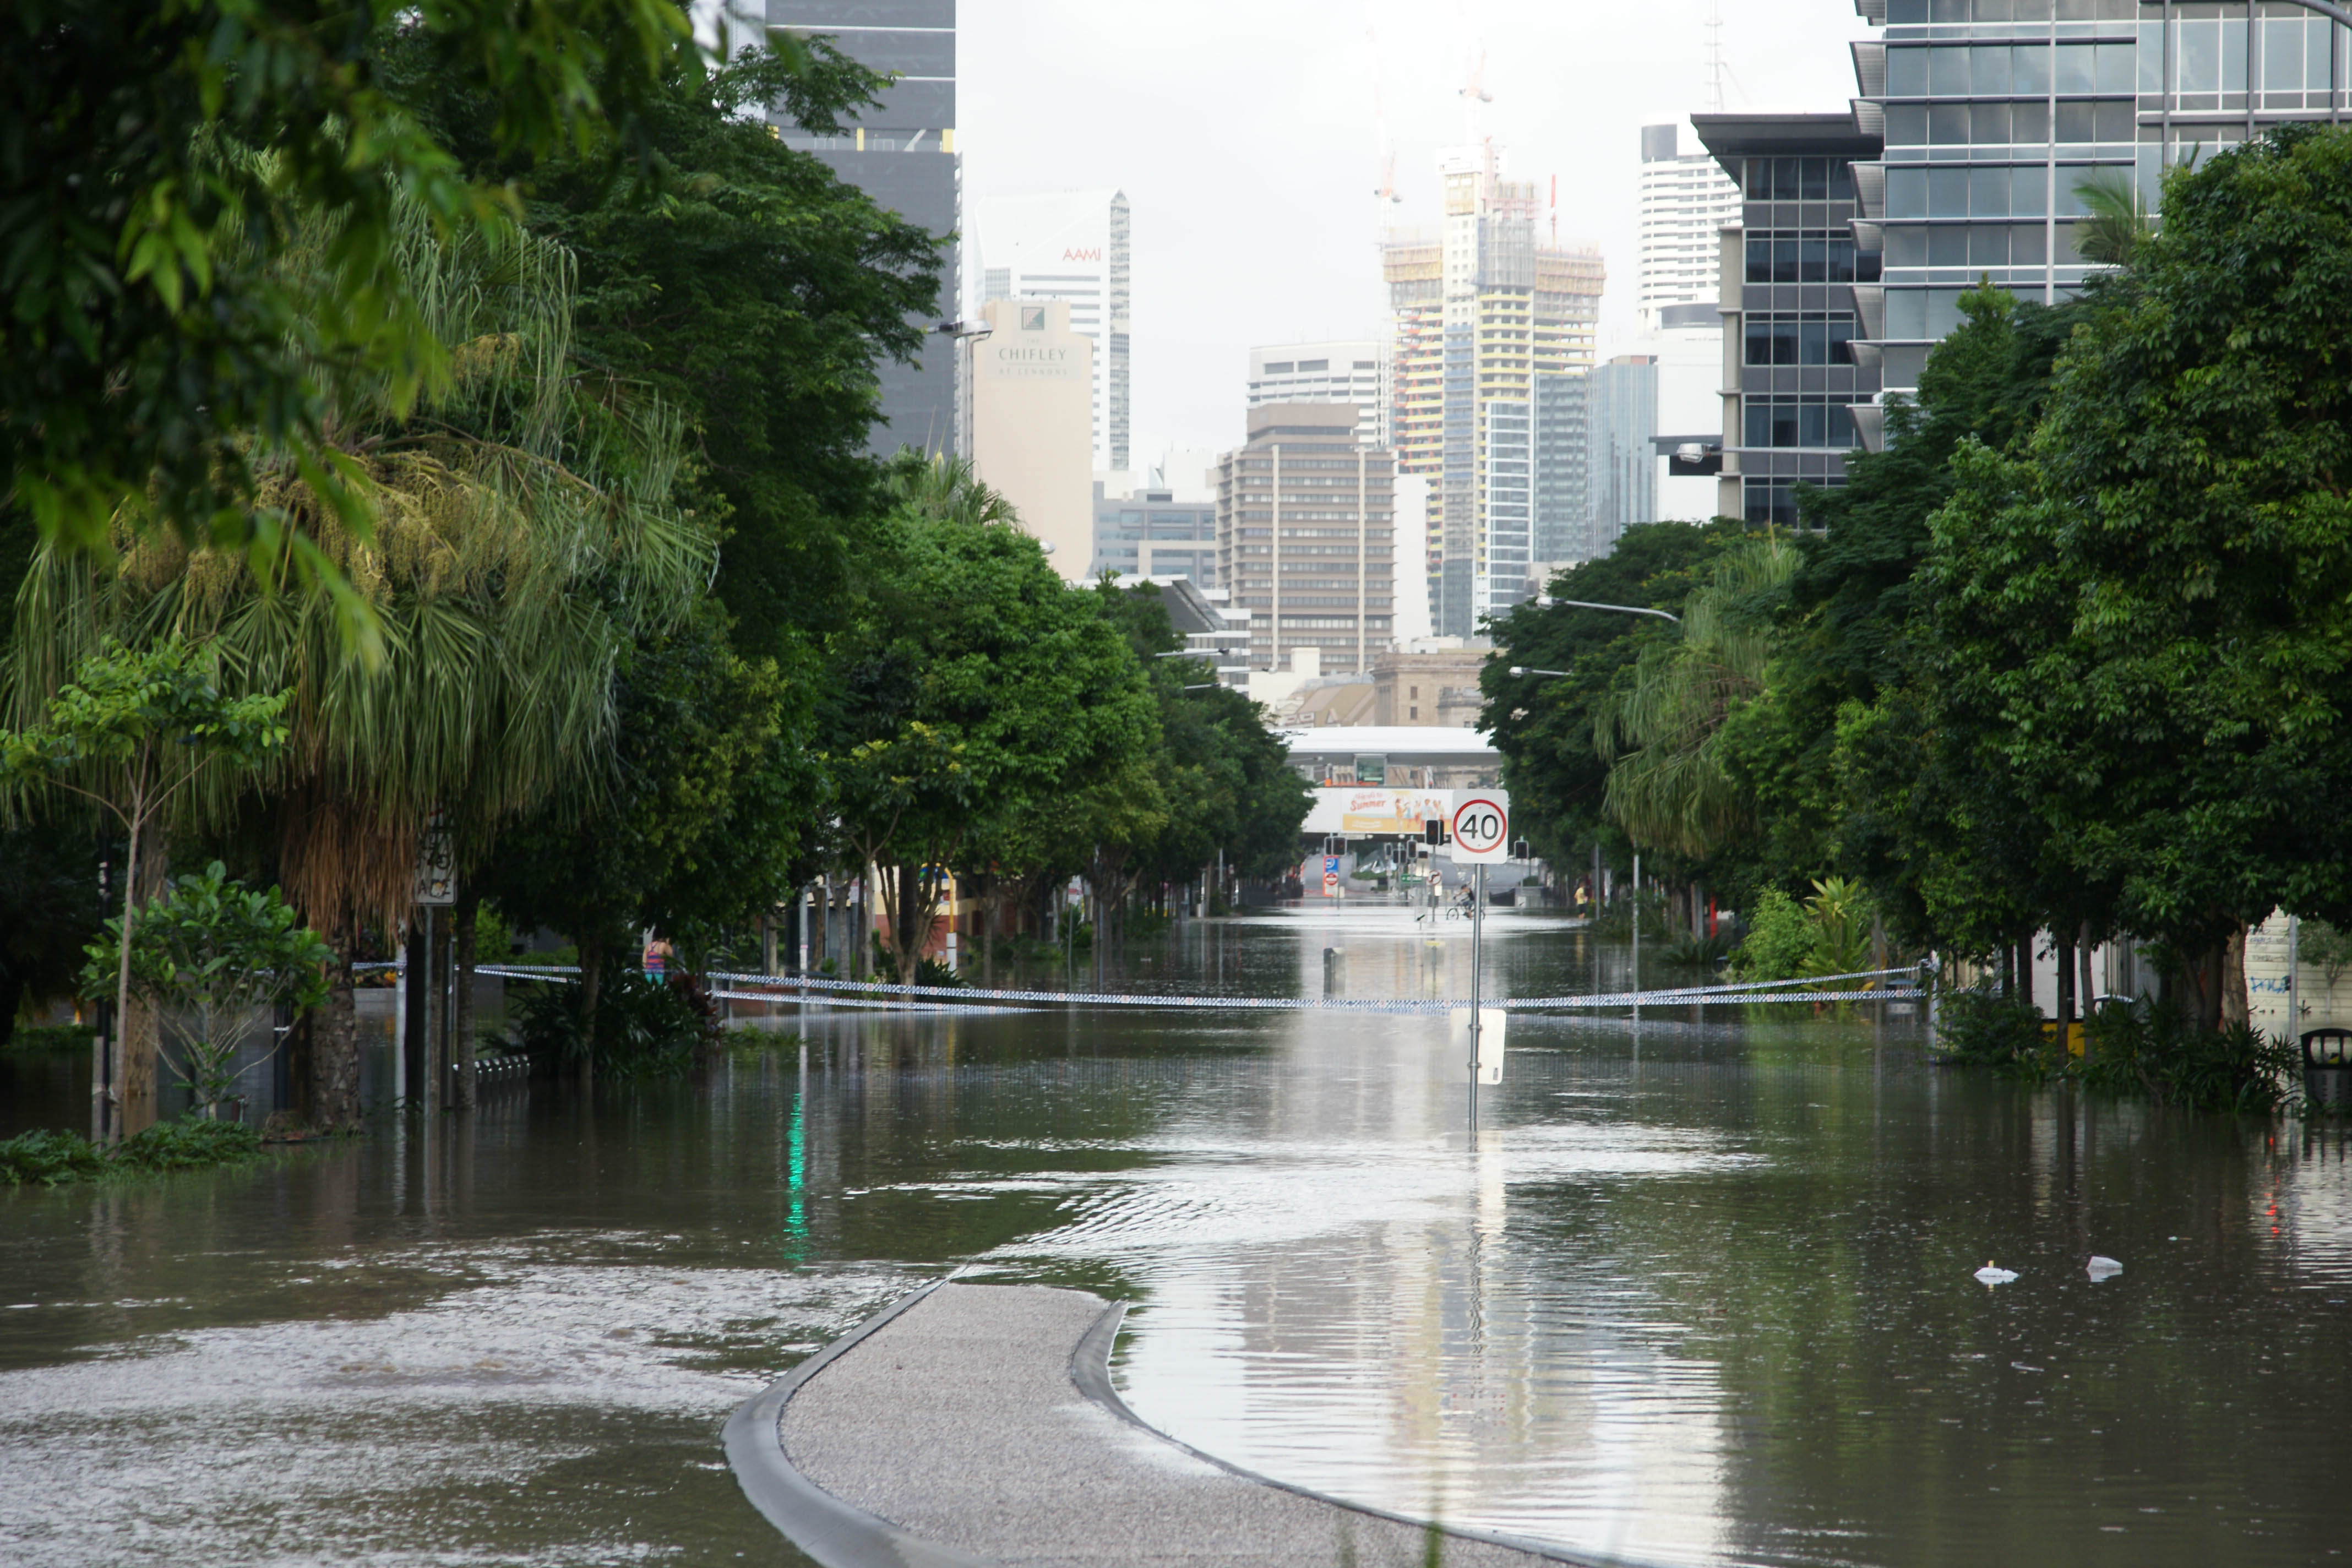 Melbourne Street 2011 flood Brisbane